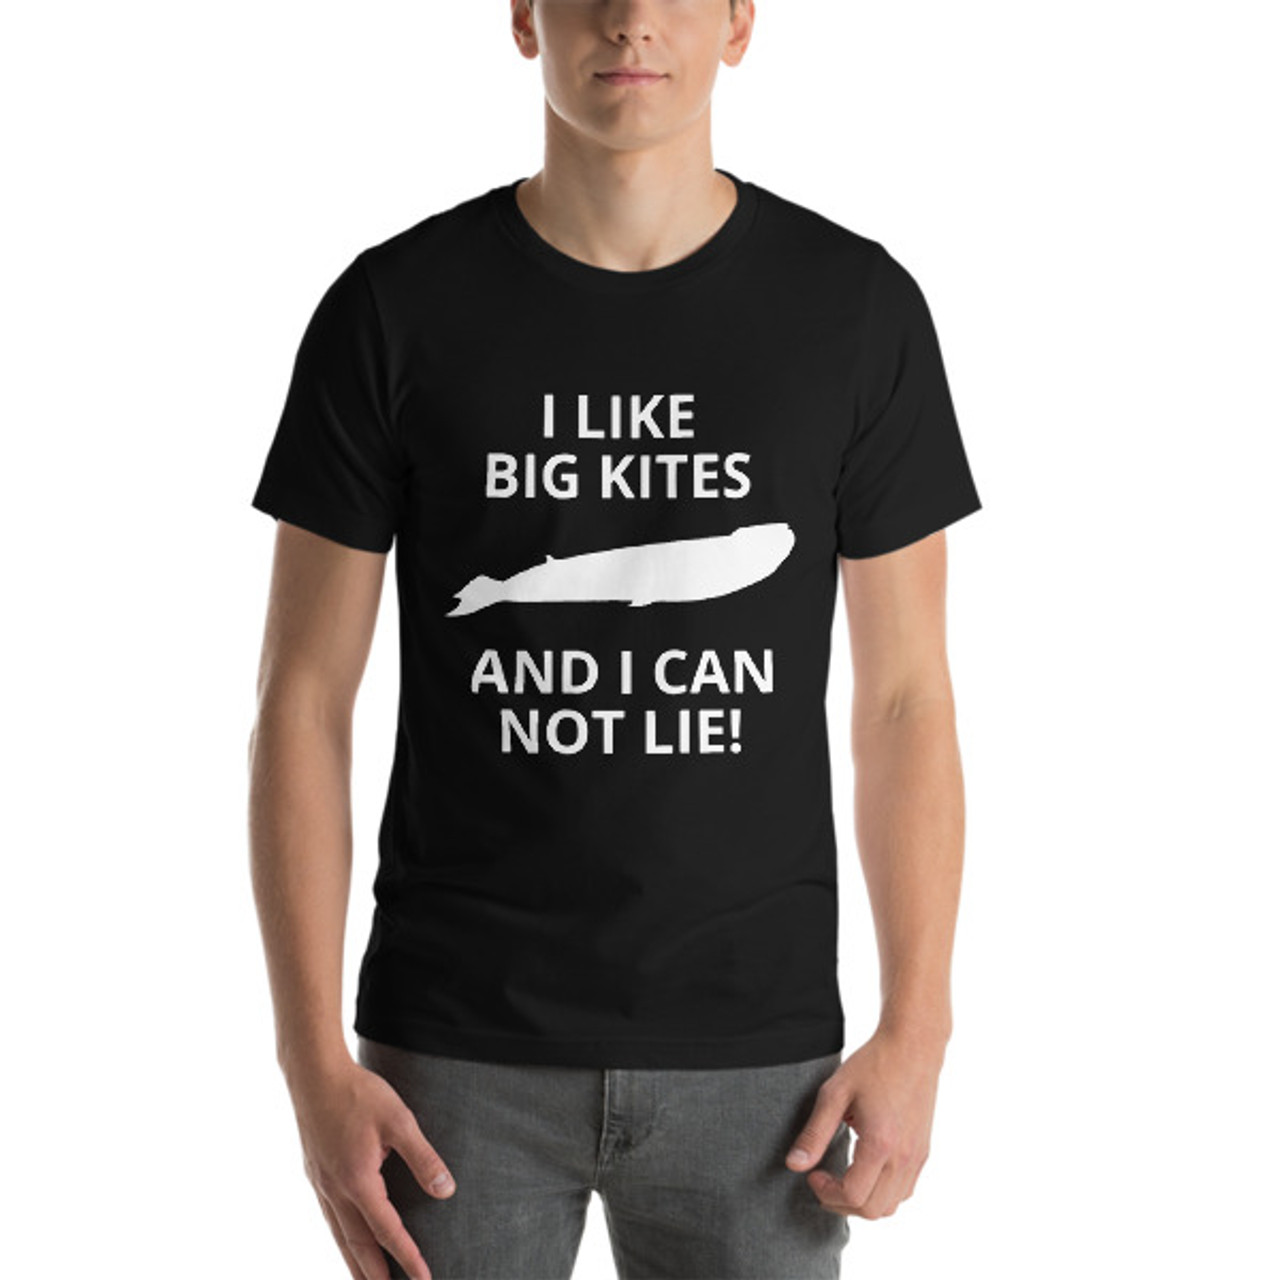 """I Like Big Kites and I Can Not Lie!' T-Shirt"